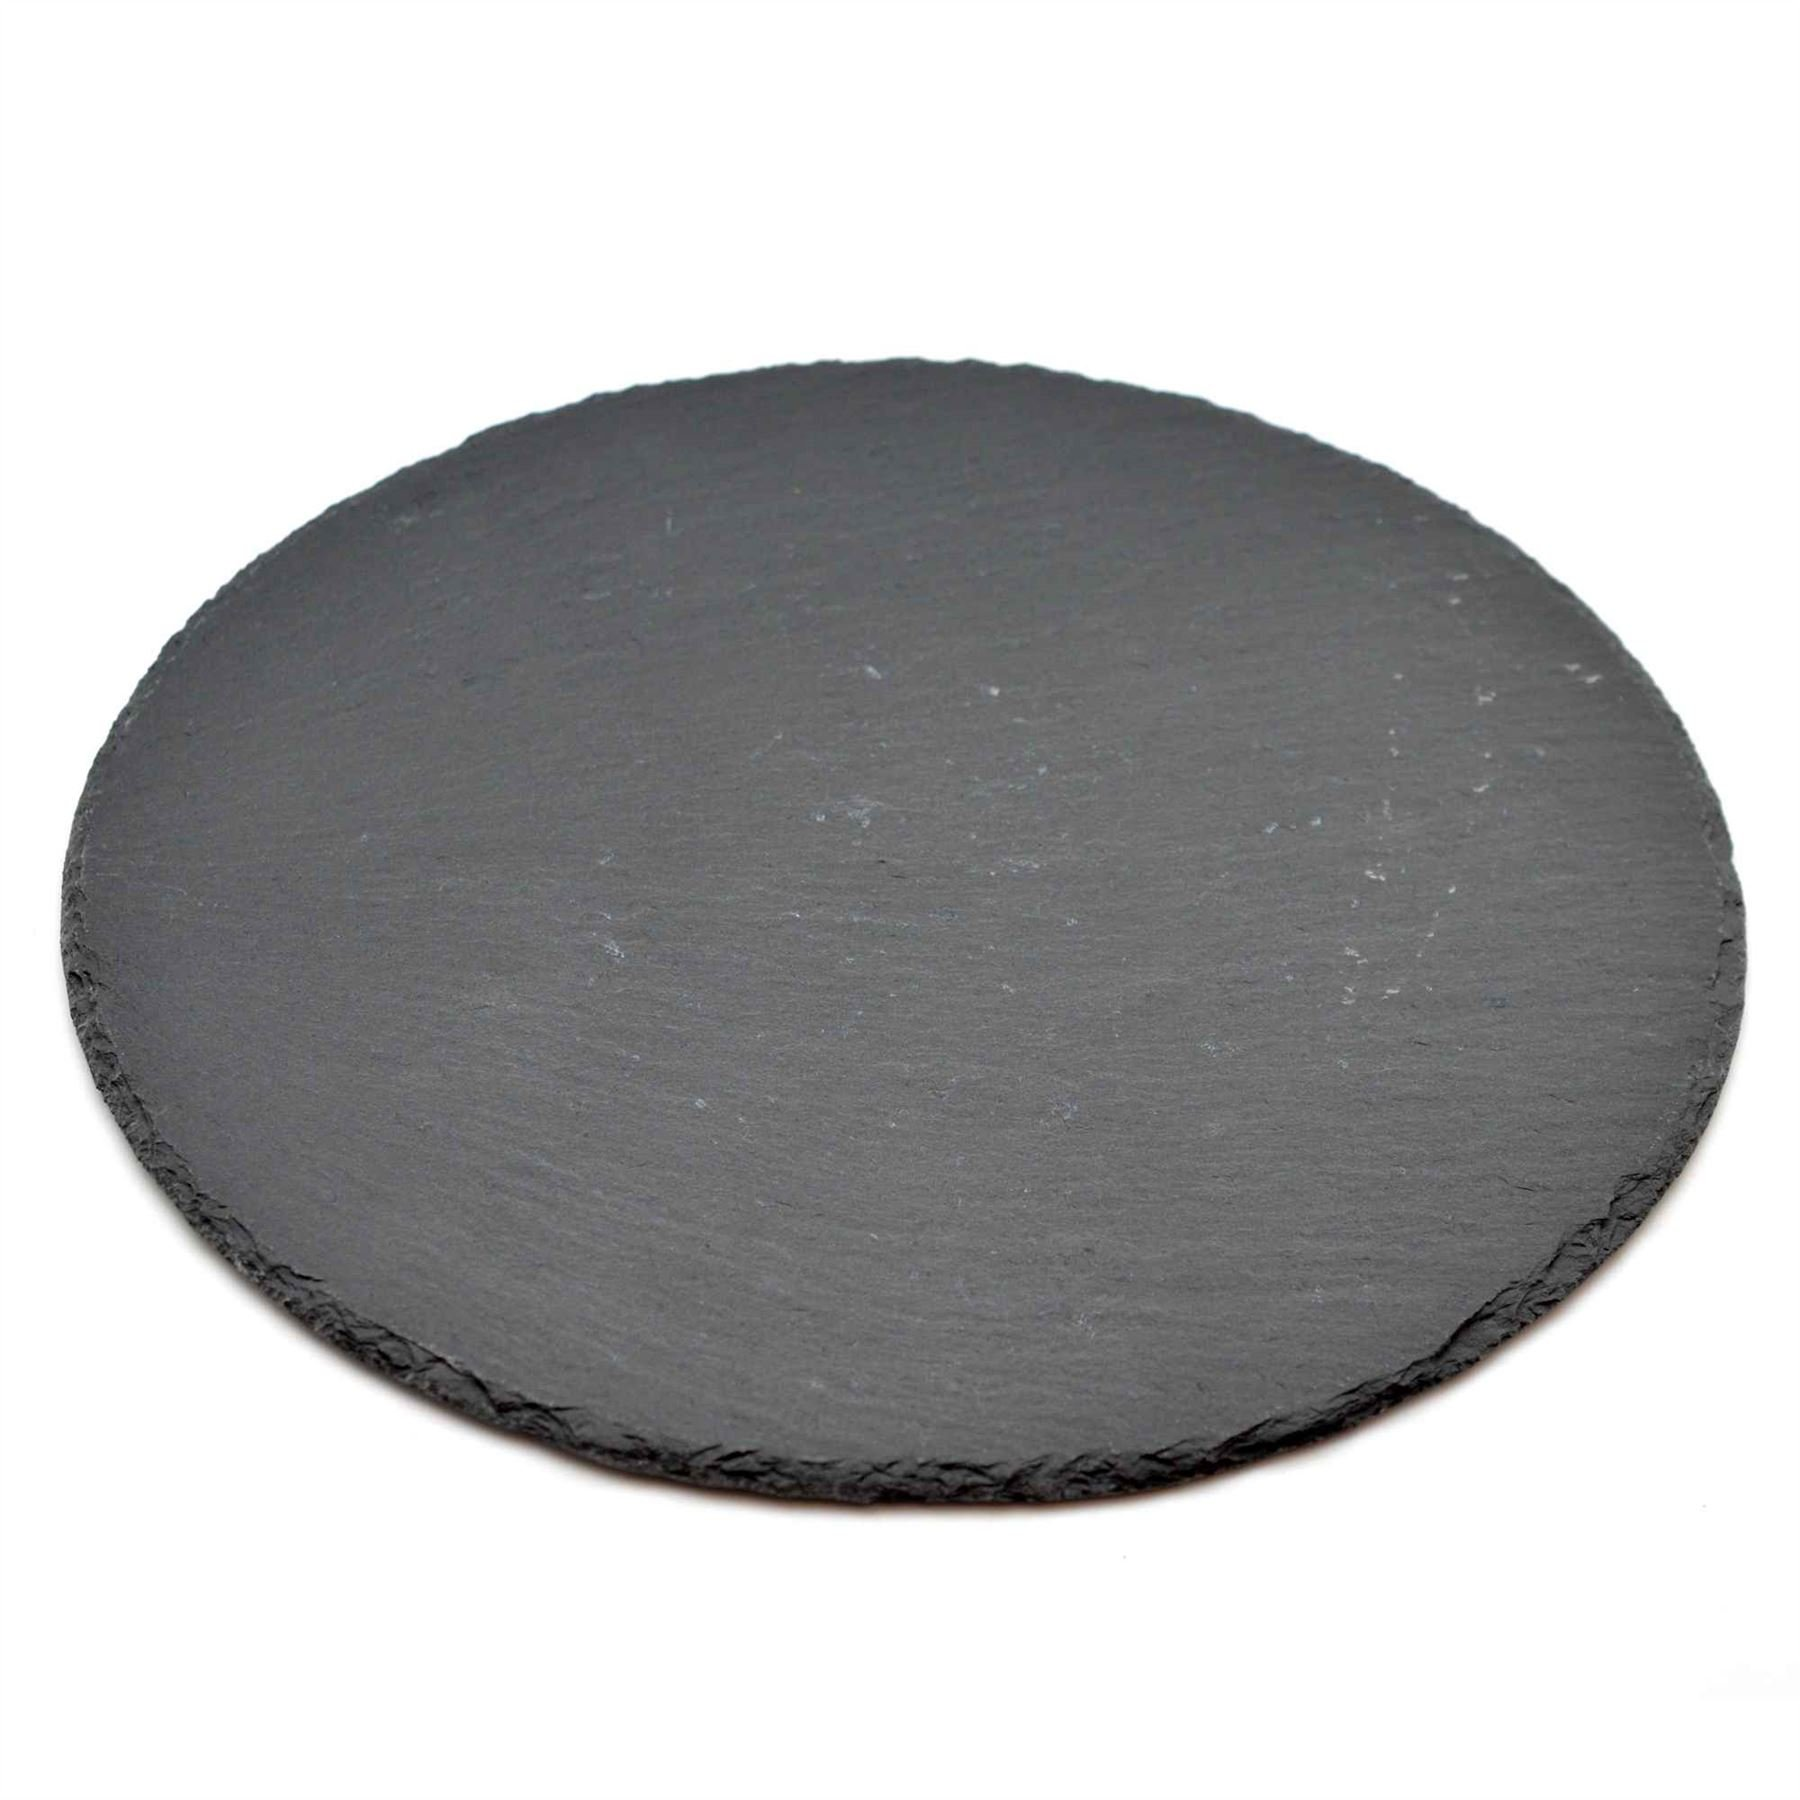 Natural Slate Round Pizza / Food / Drinks Serving Platter - 330mm